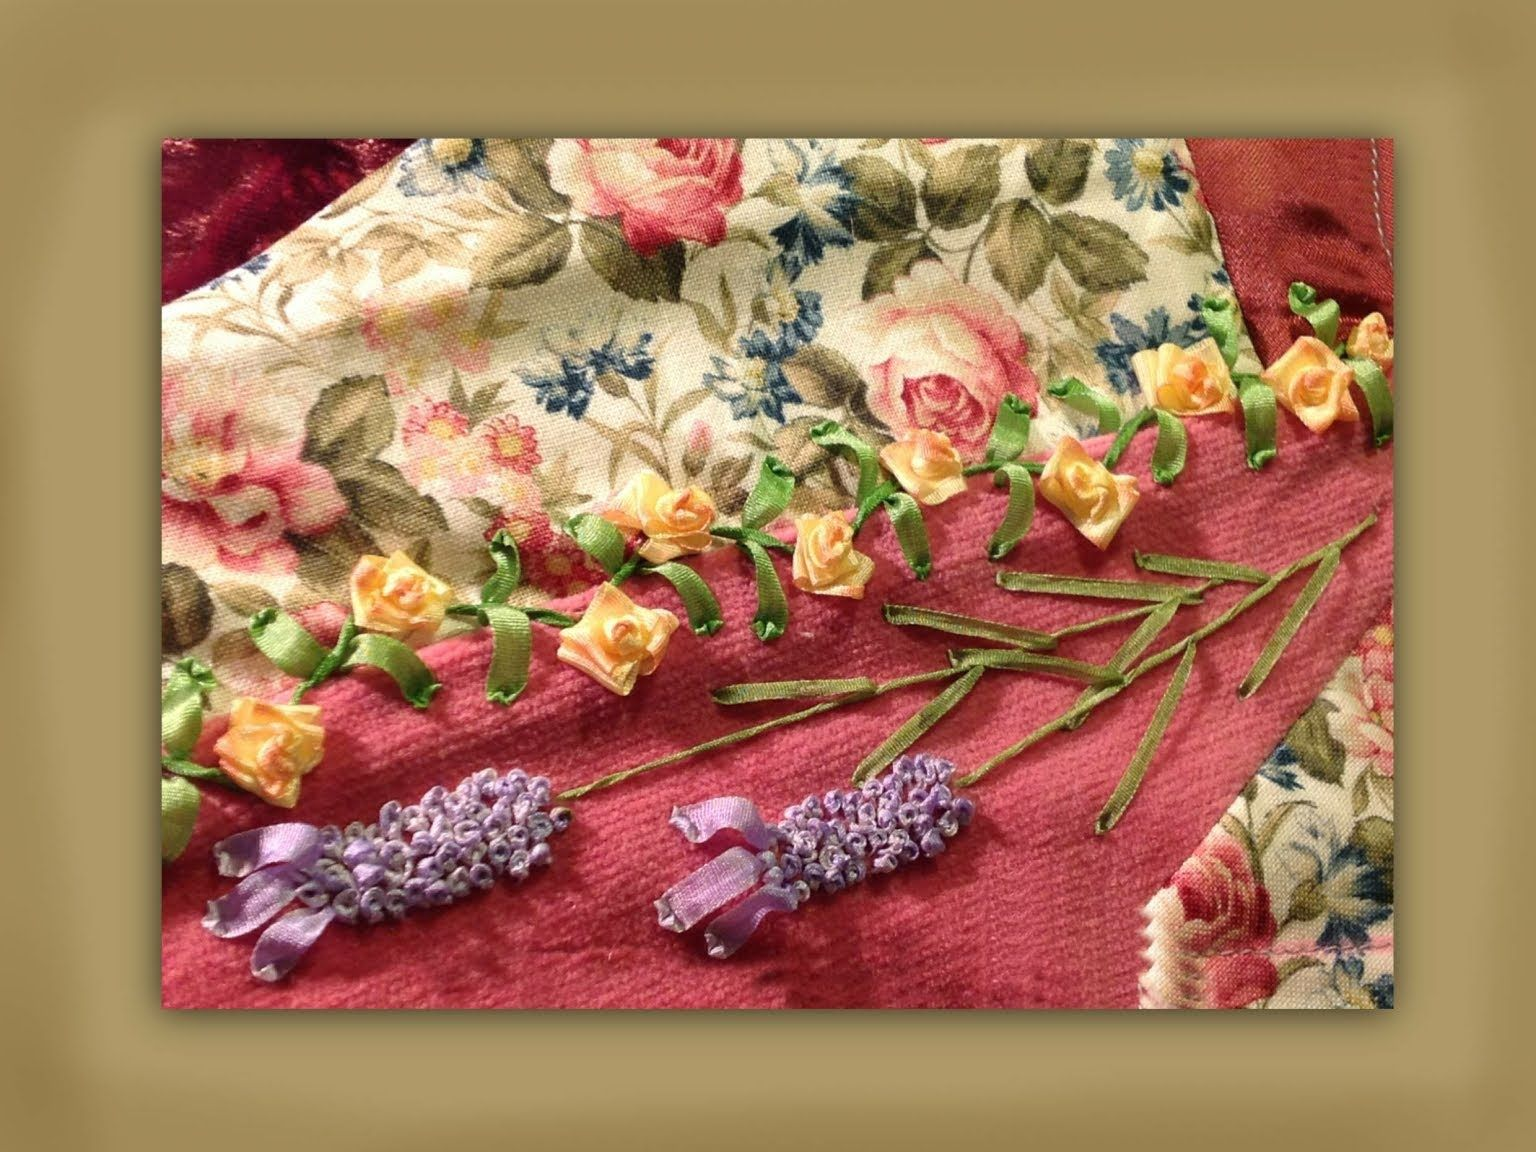 Ribbon embroidery bedspread designs - How To Make Silk Ribbon Embroidered Fat Head Lavender Blooms